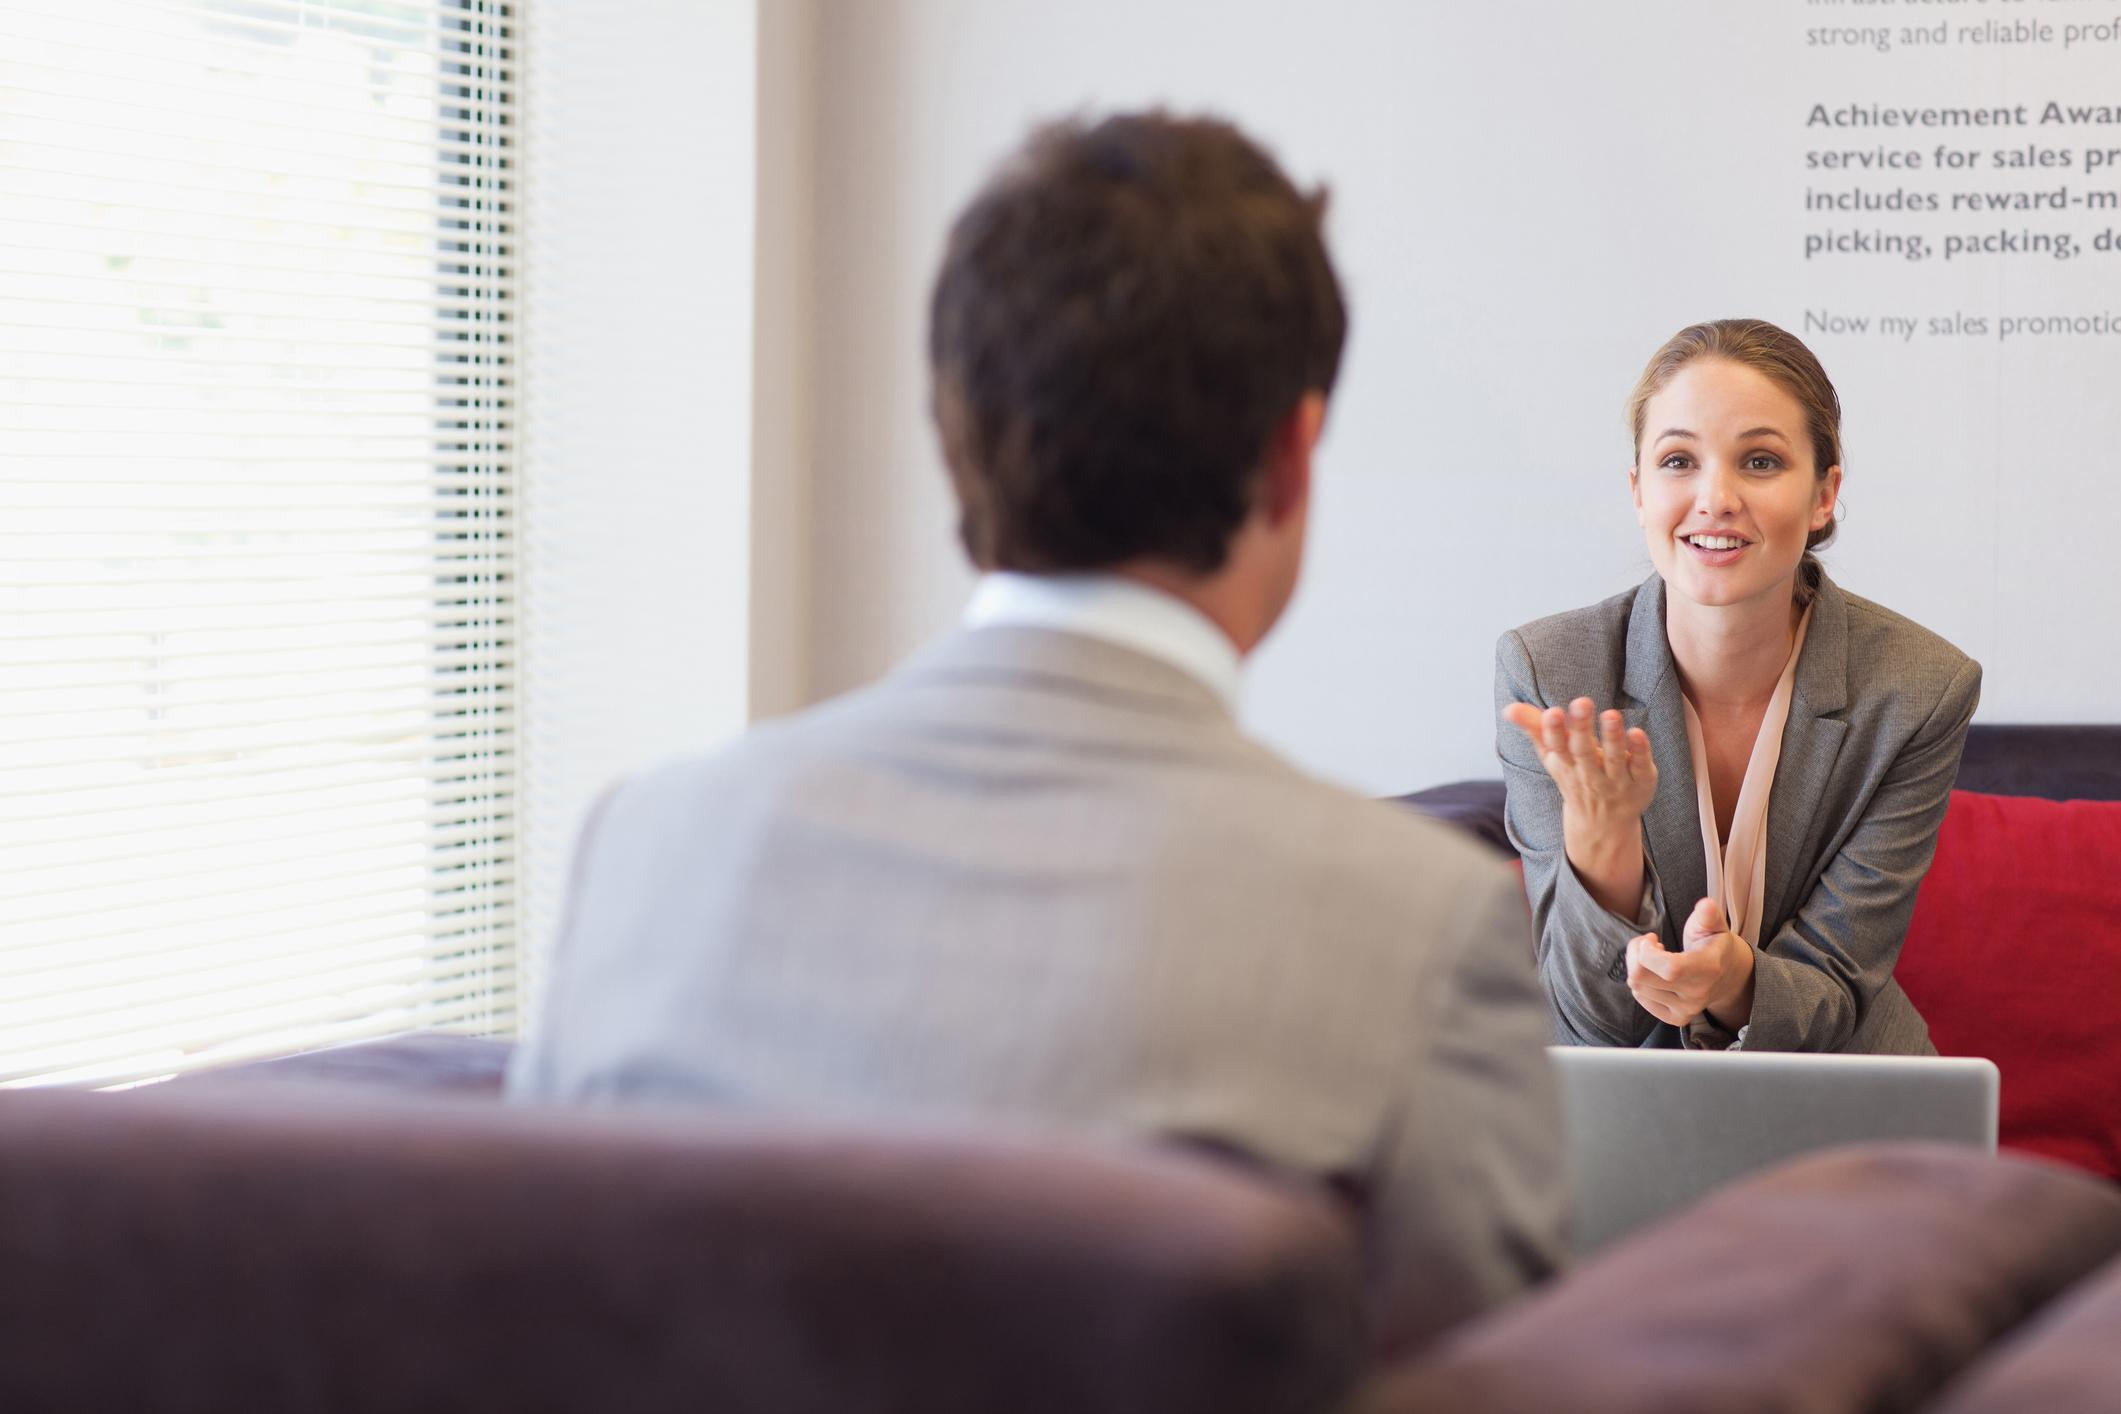 The 7 signs you nailed your job interview